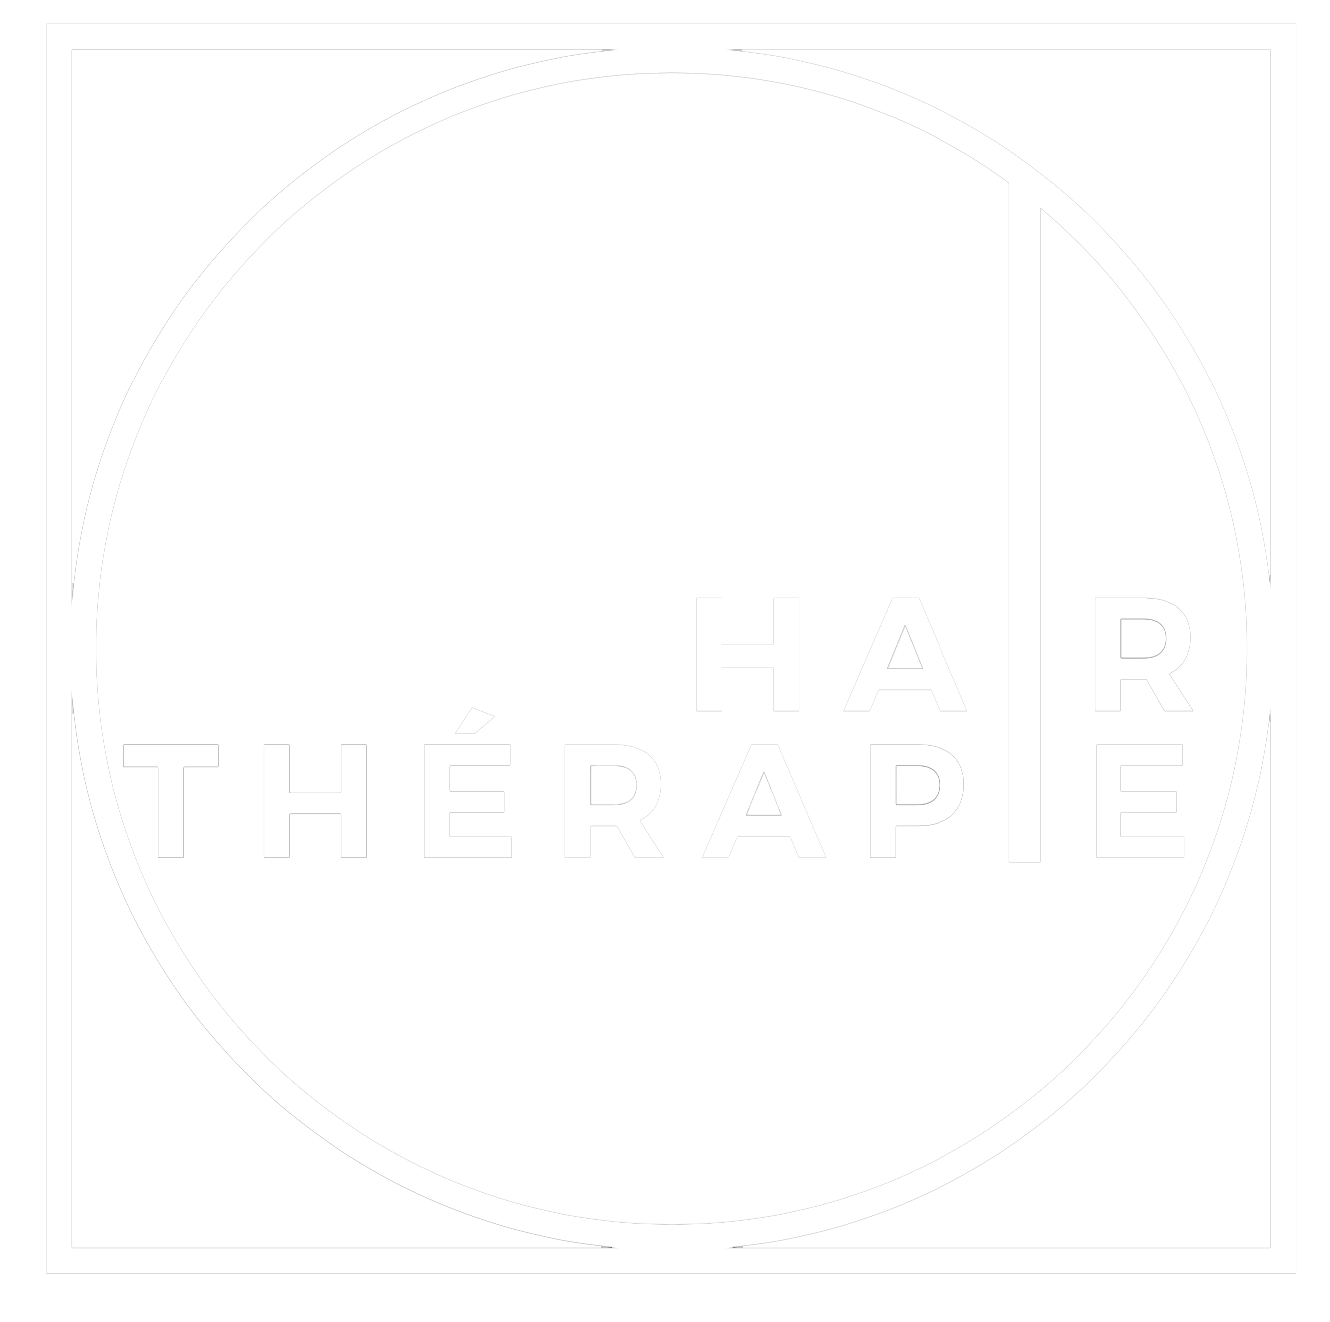 HAIR THERAPIE | REVOLUTIONARY HAIR CARE